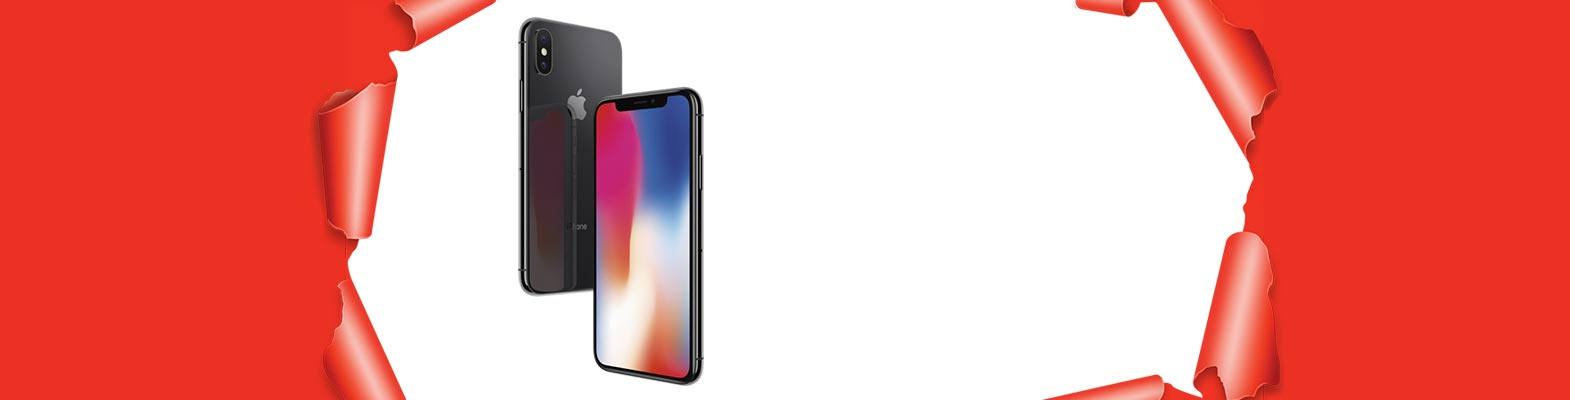 Get iPhone X 64GB for $0